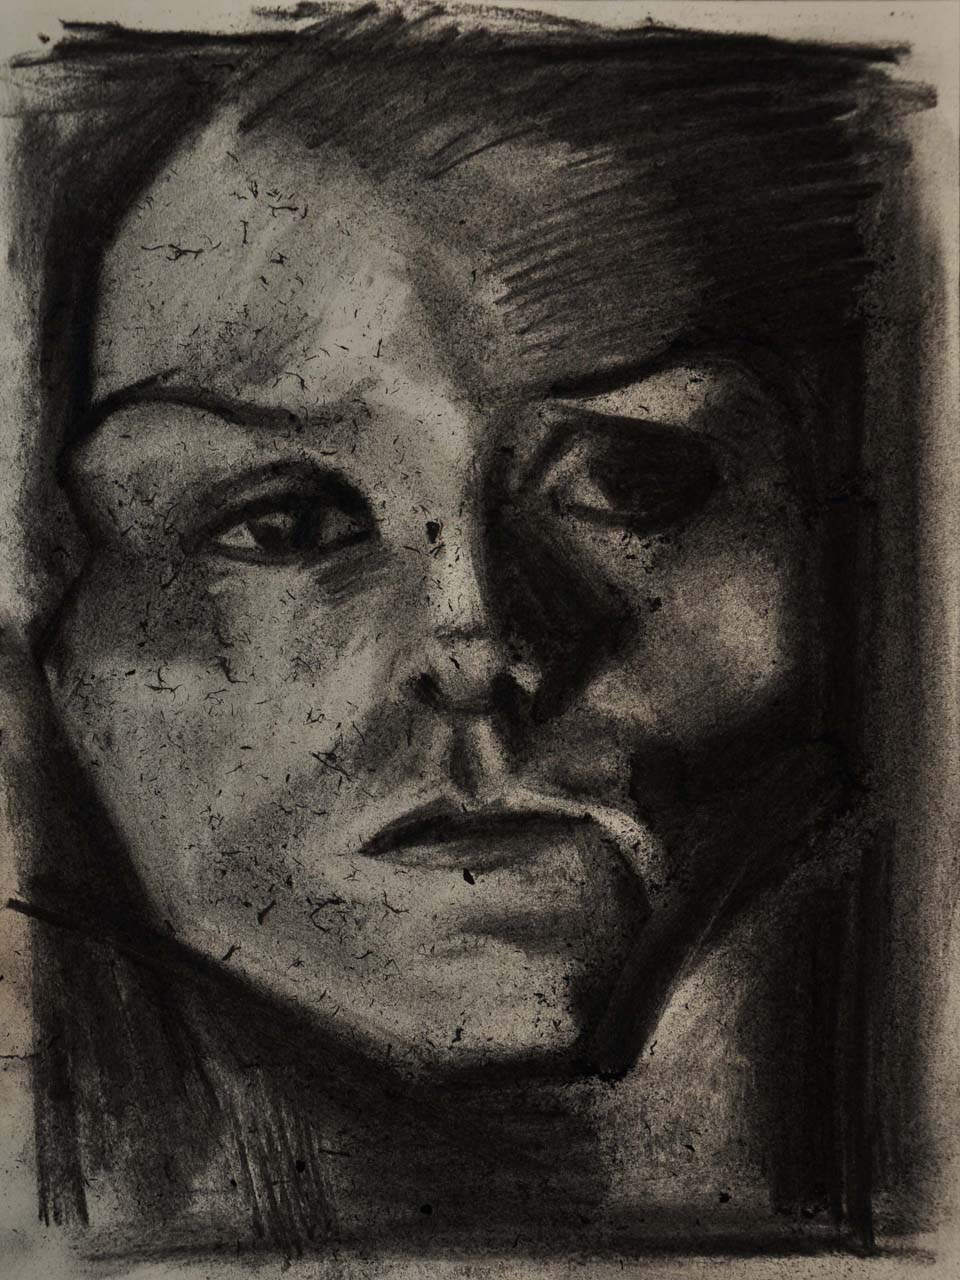 Drawing #77, 2018. Charcoal on paper, 15 inch x 11.5 inch